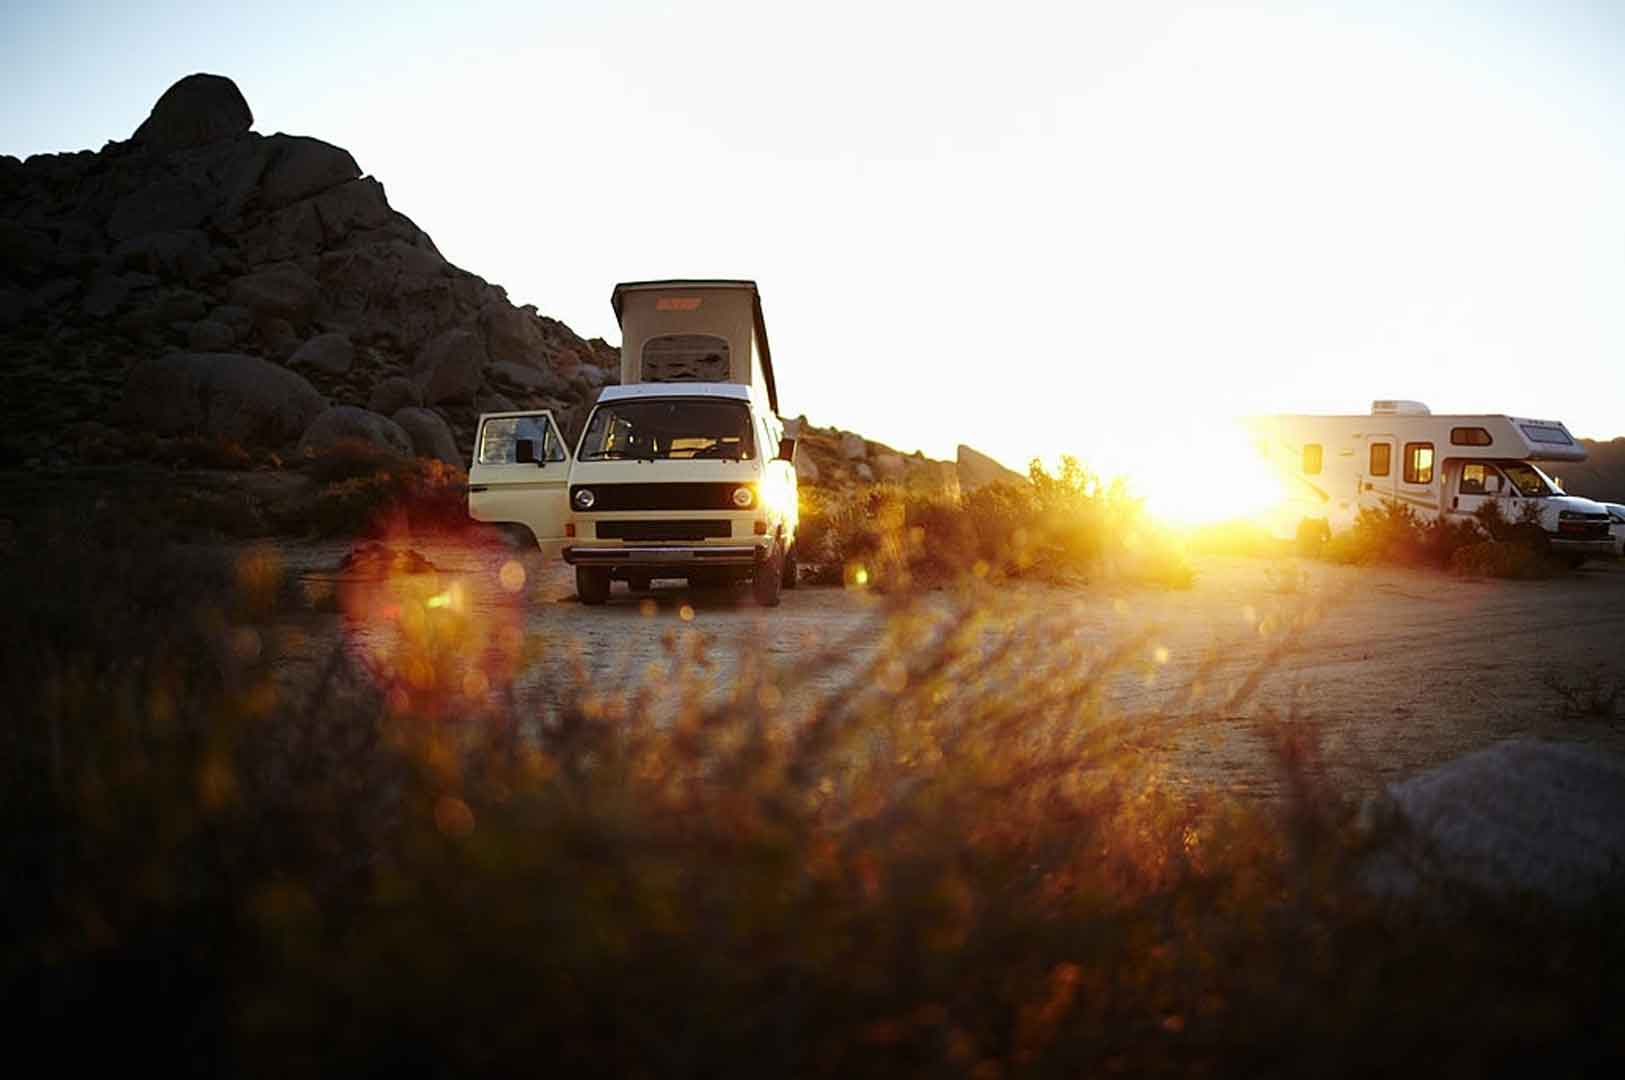 What Is Good Mileage For A Used RV?